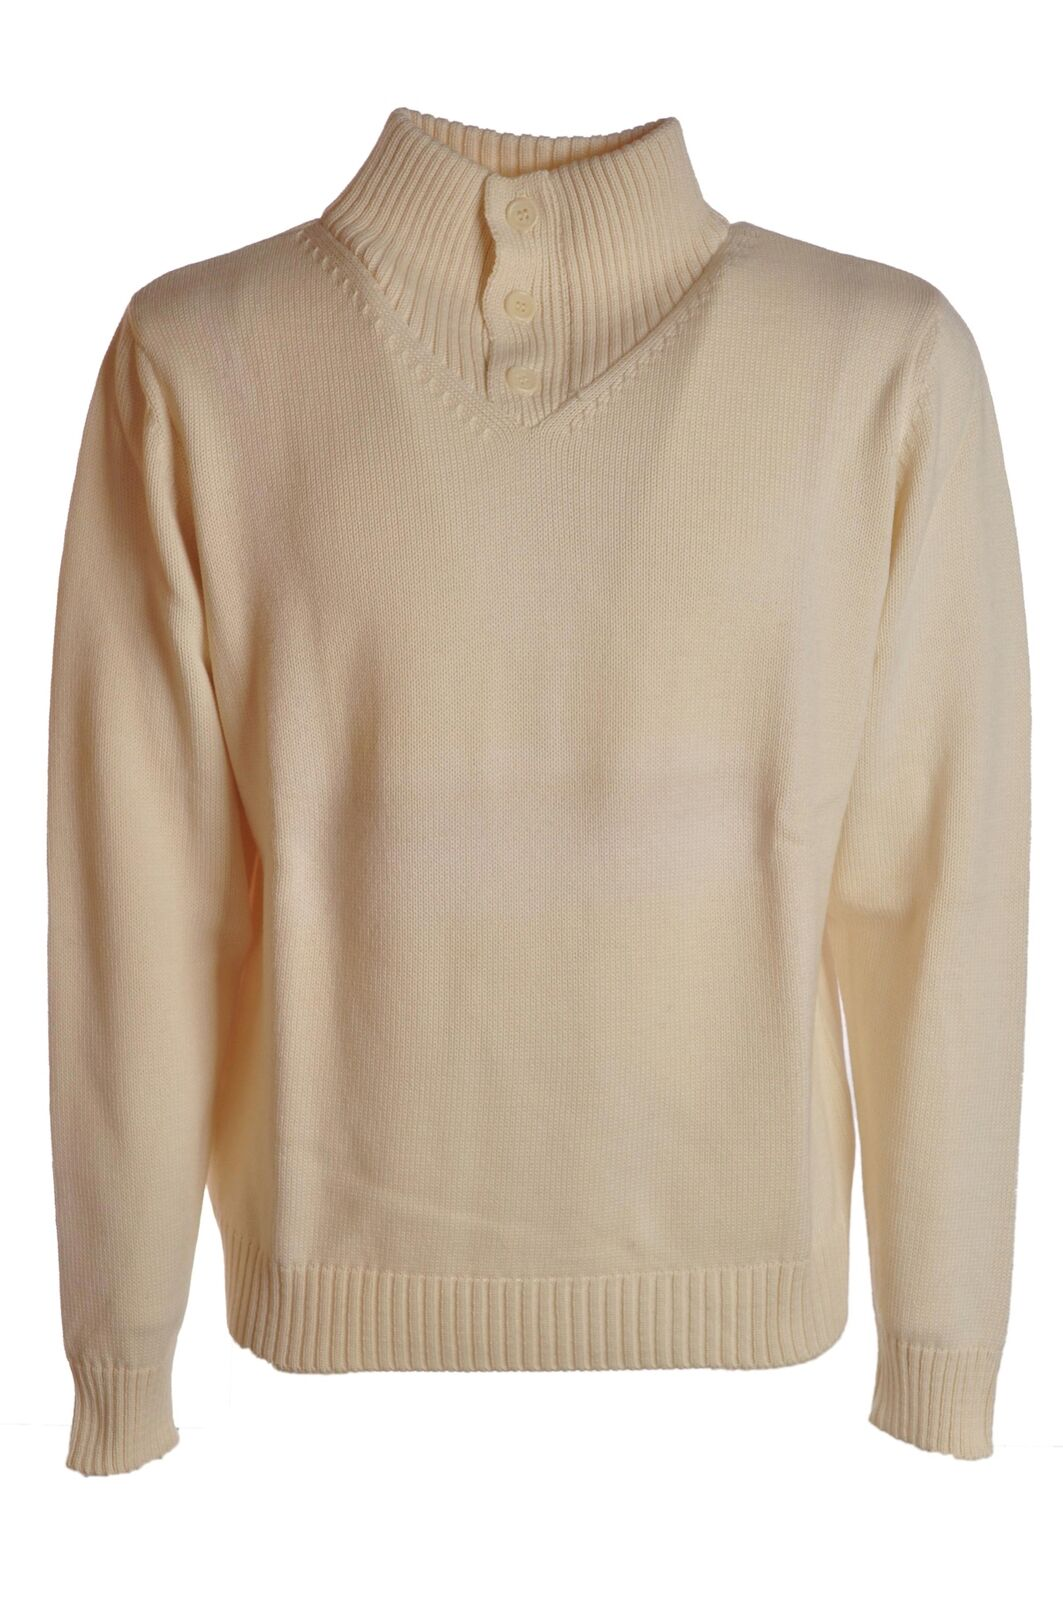 Cube  -  Sweaters - Male - White - 4363526A184448